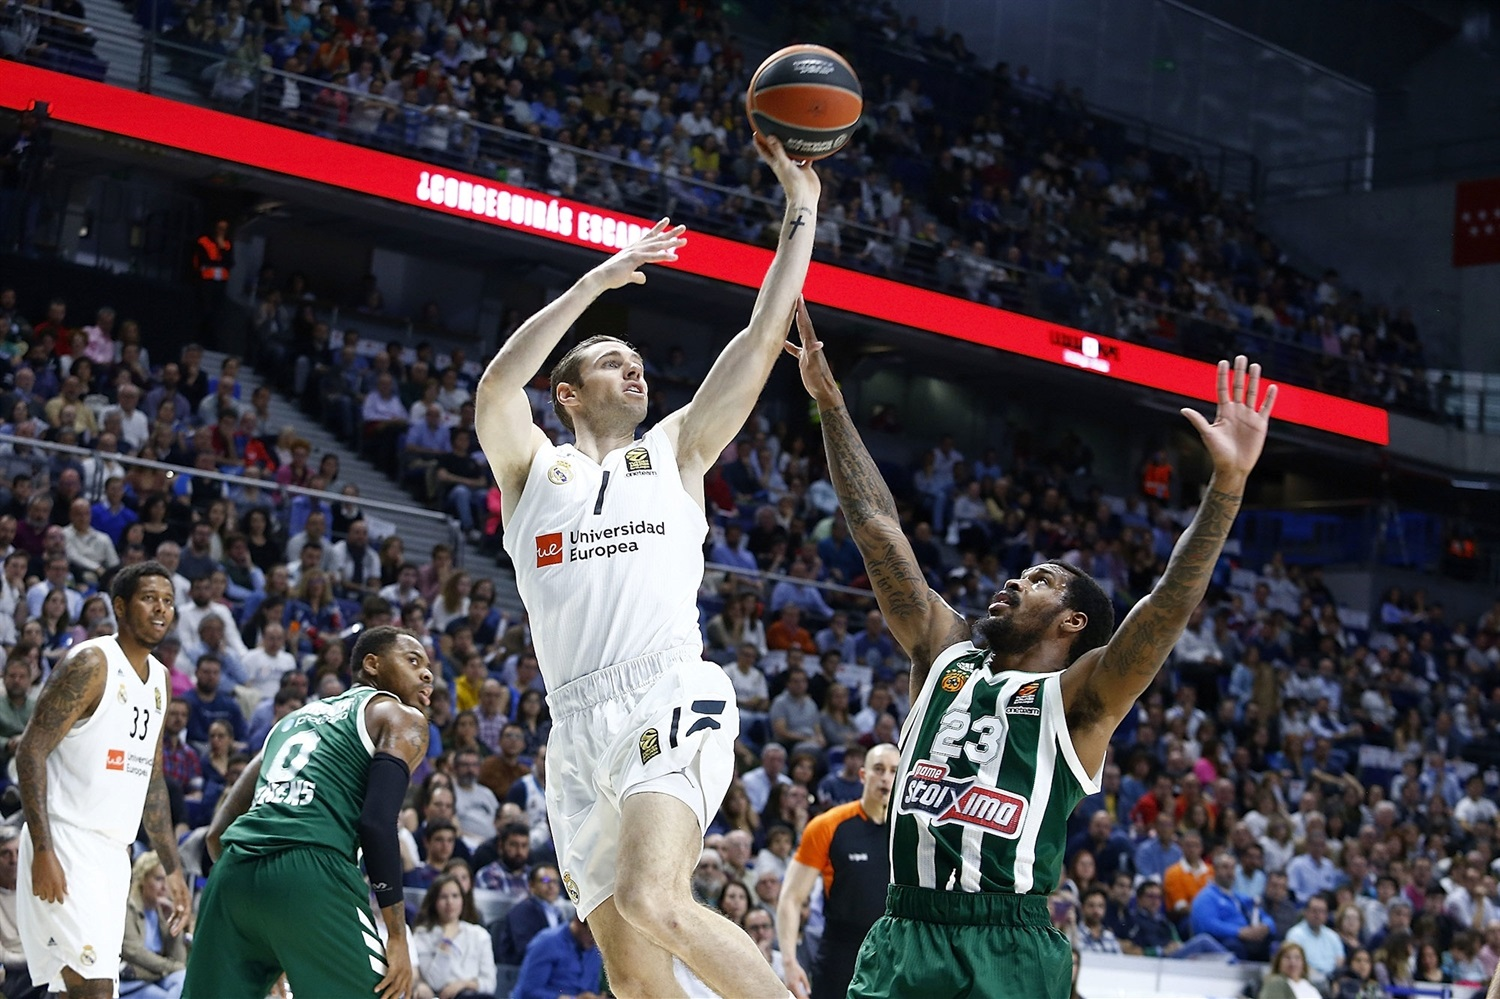 Fabien Causeur - Real Madrid - EB18